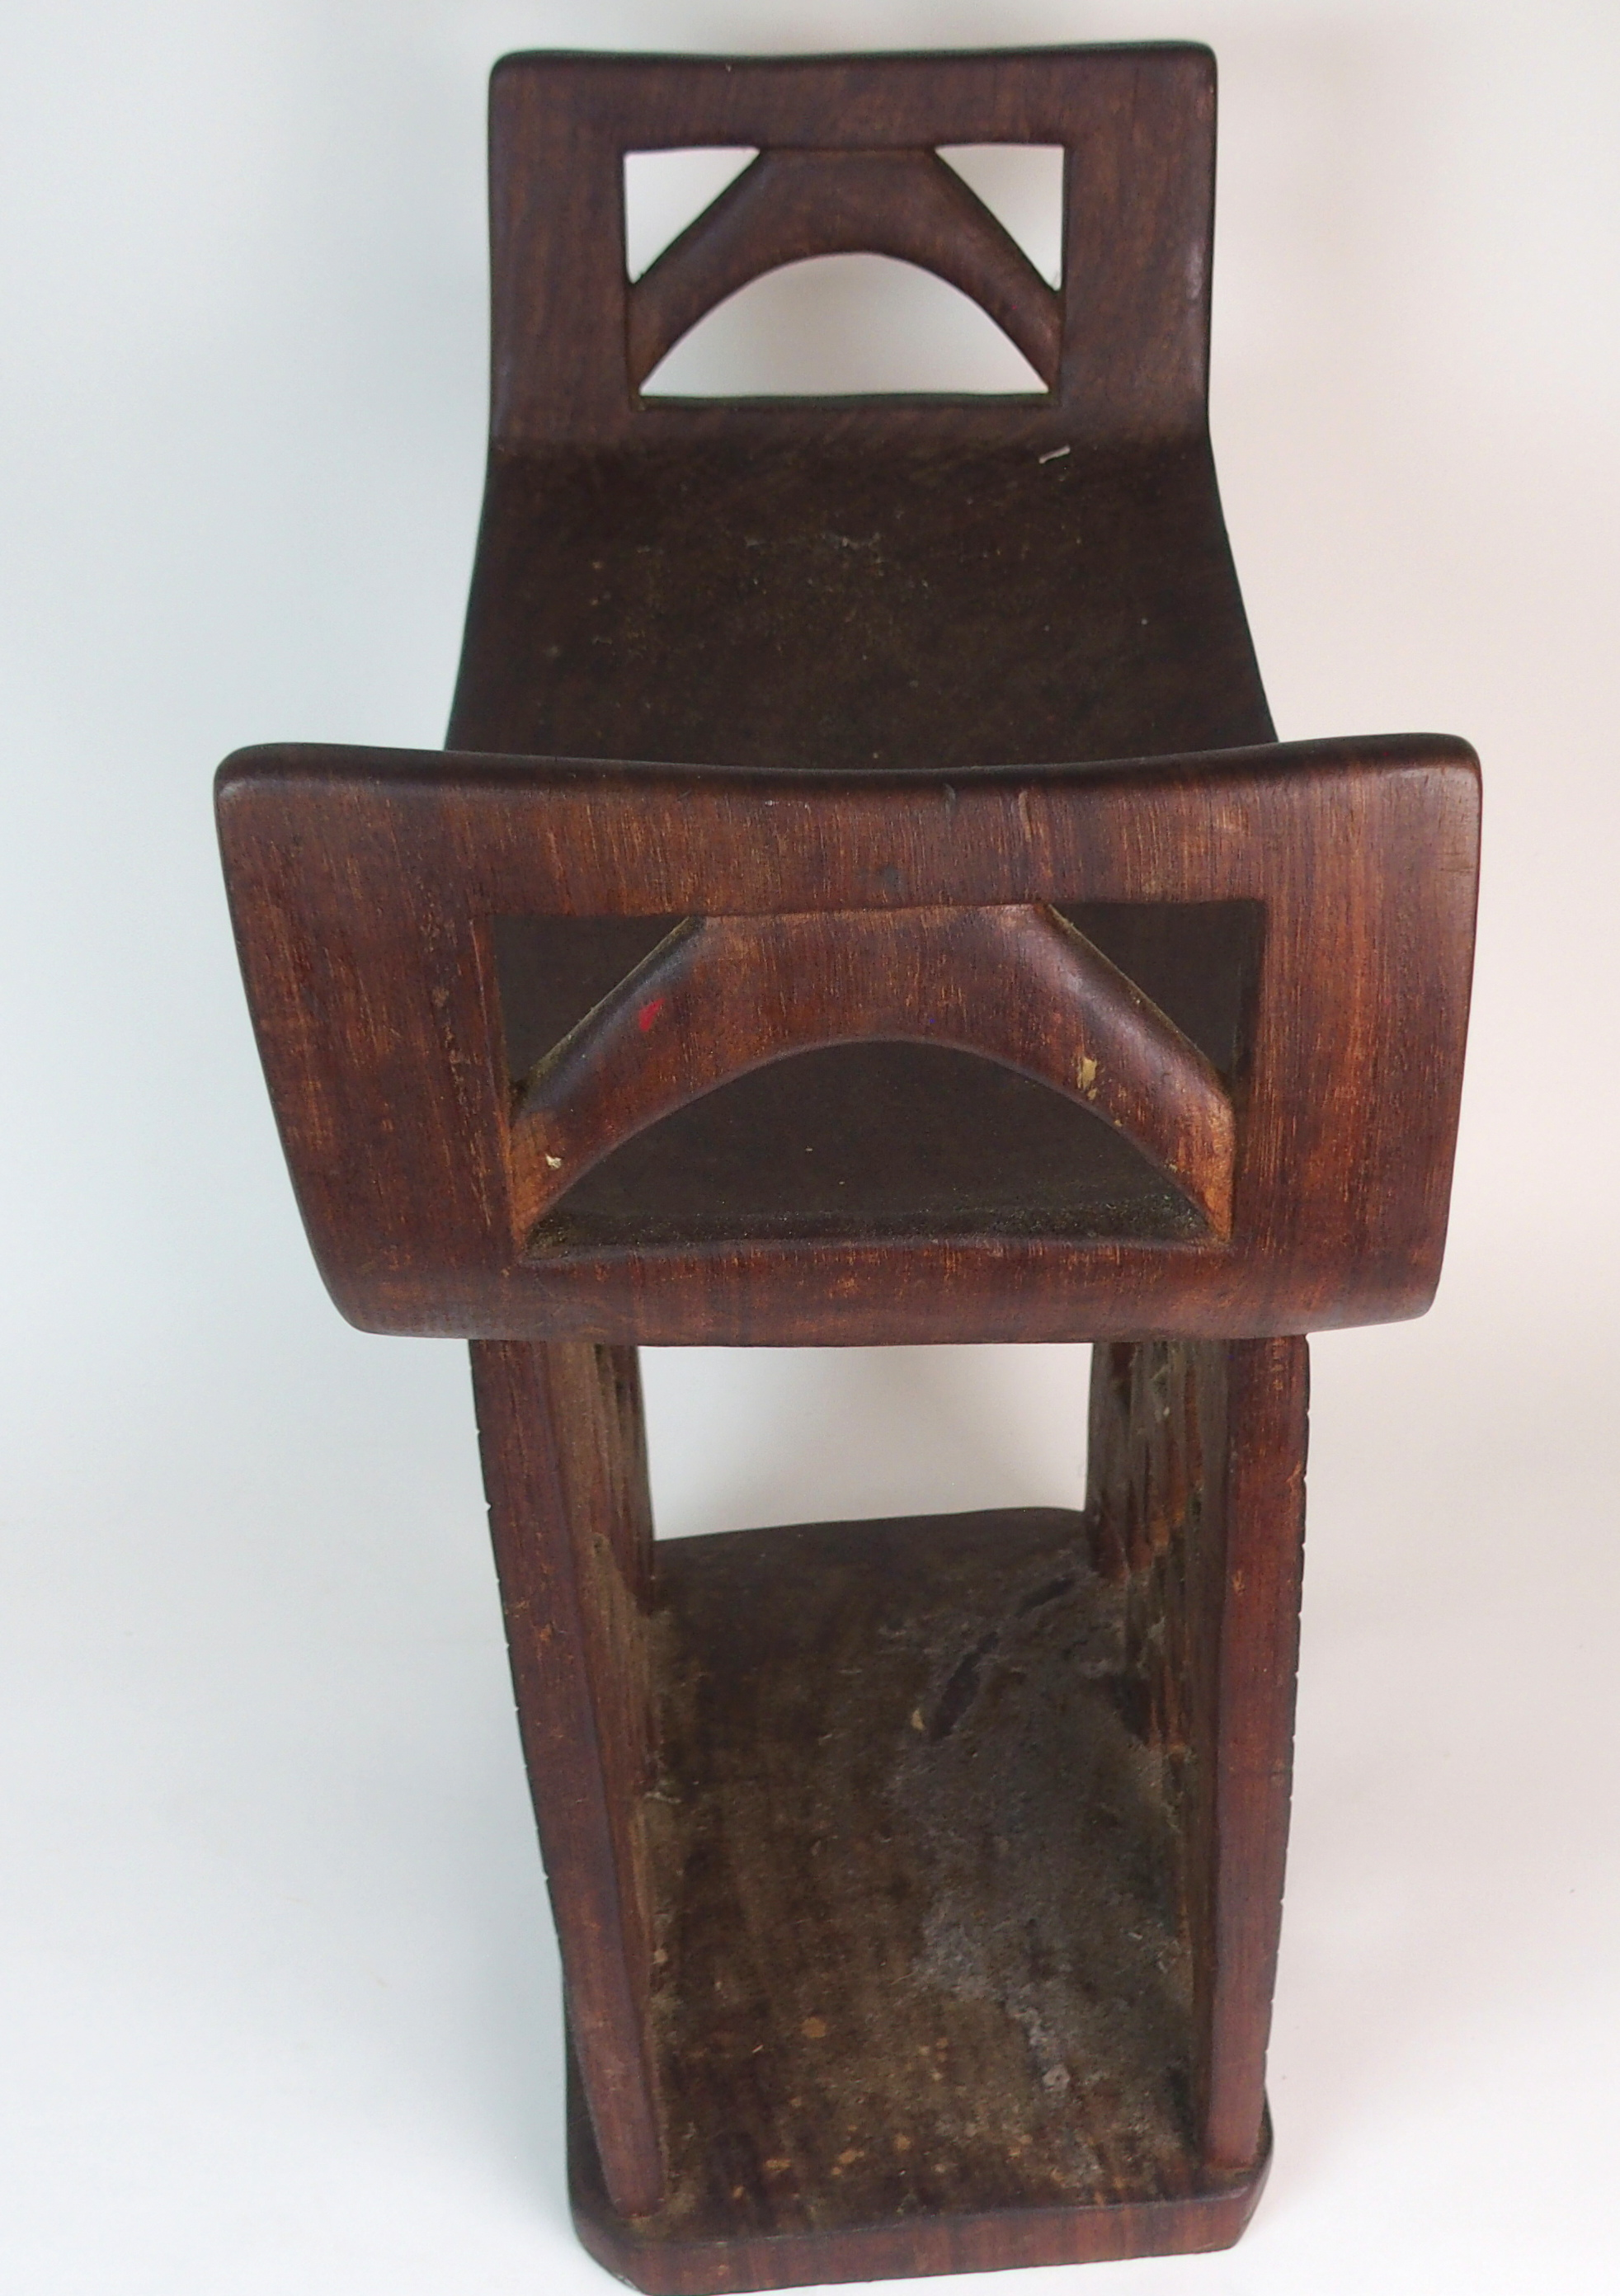 Lot 34 - *WITHDRAWN* AN AFRICAN TRIBAL HARDWOOD CIRCULAR TABLE with deep carved rim above a pair of curved